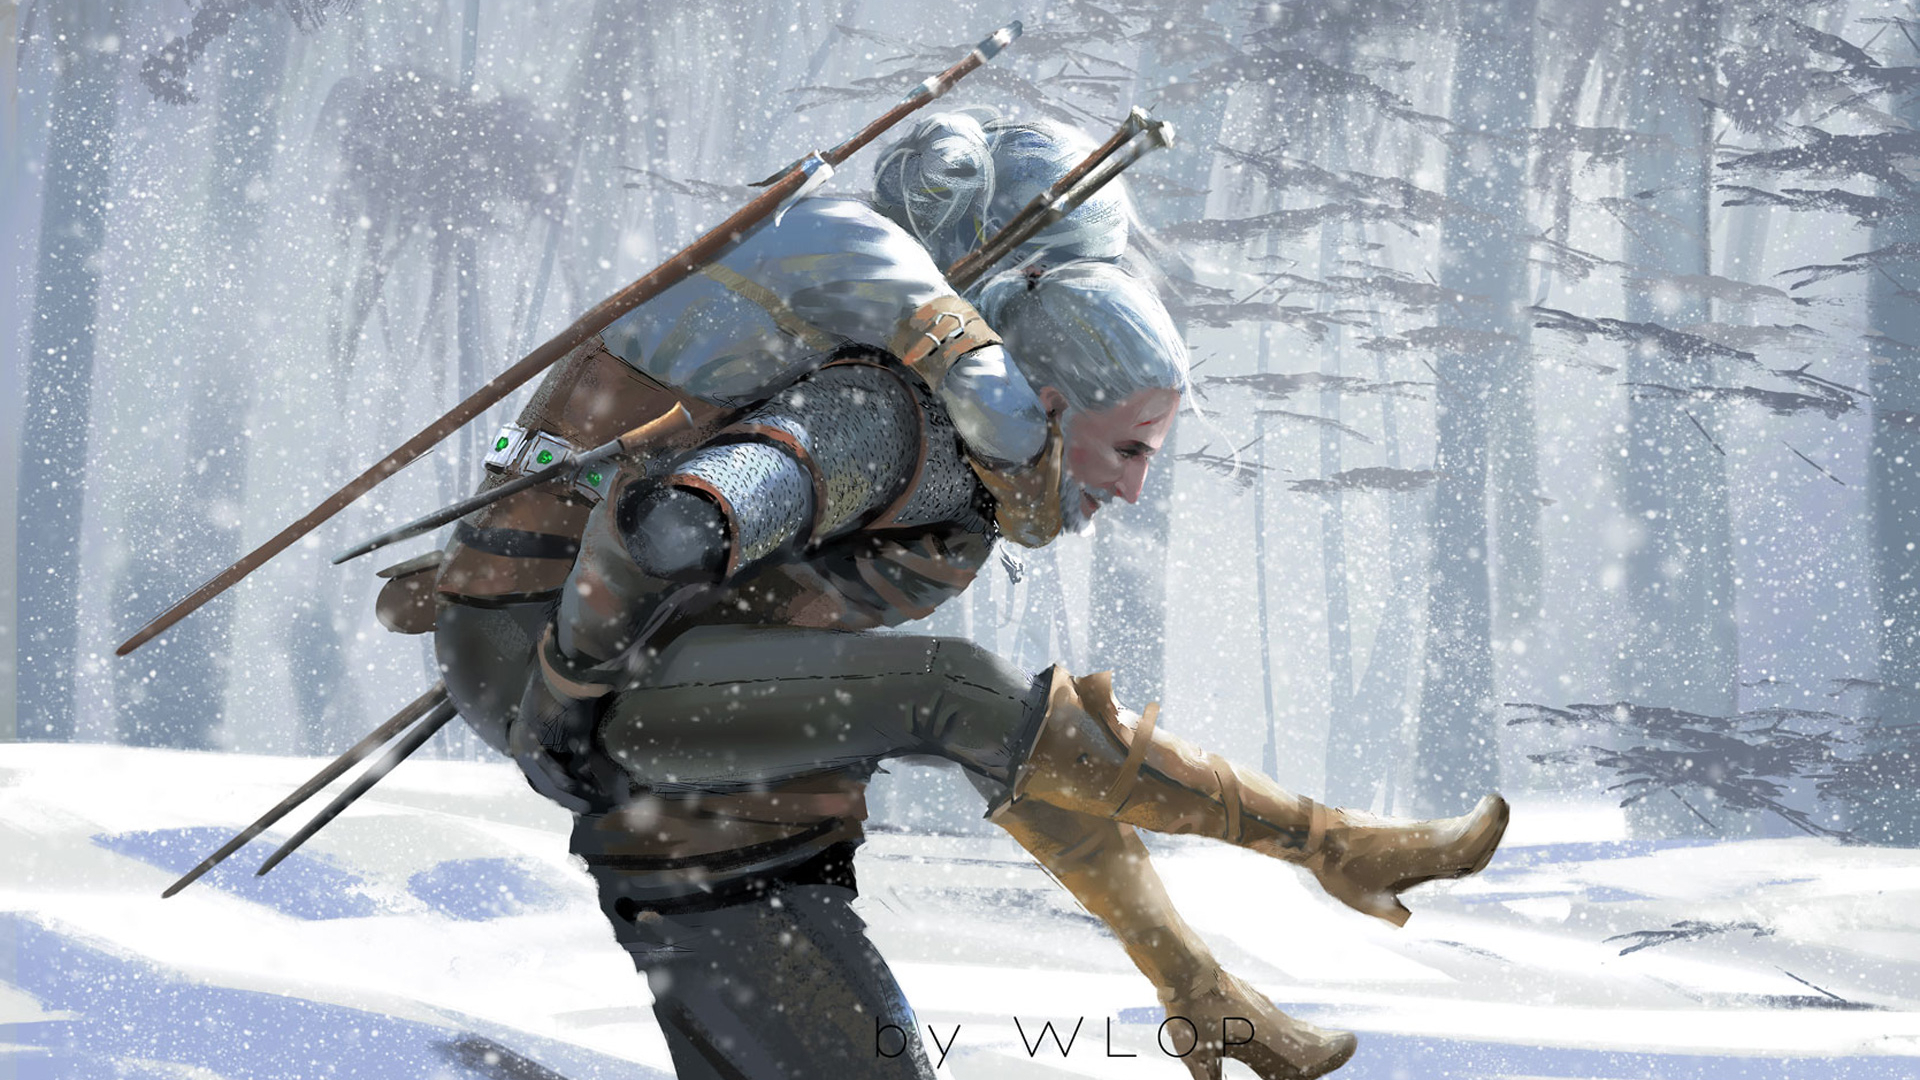 1920x1080 The Witcher 3 Wild Hunt Artwork 1080p Laptop Full Hd